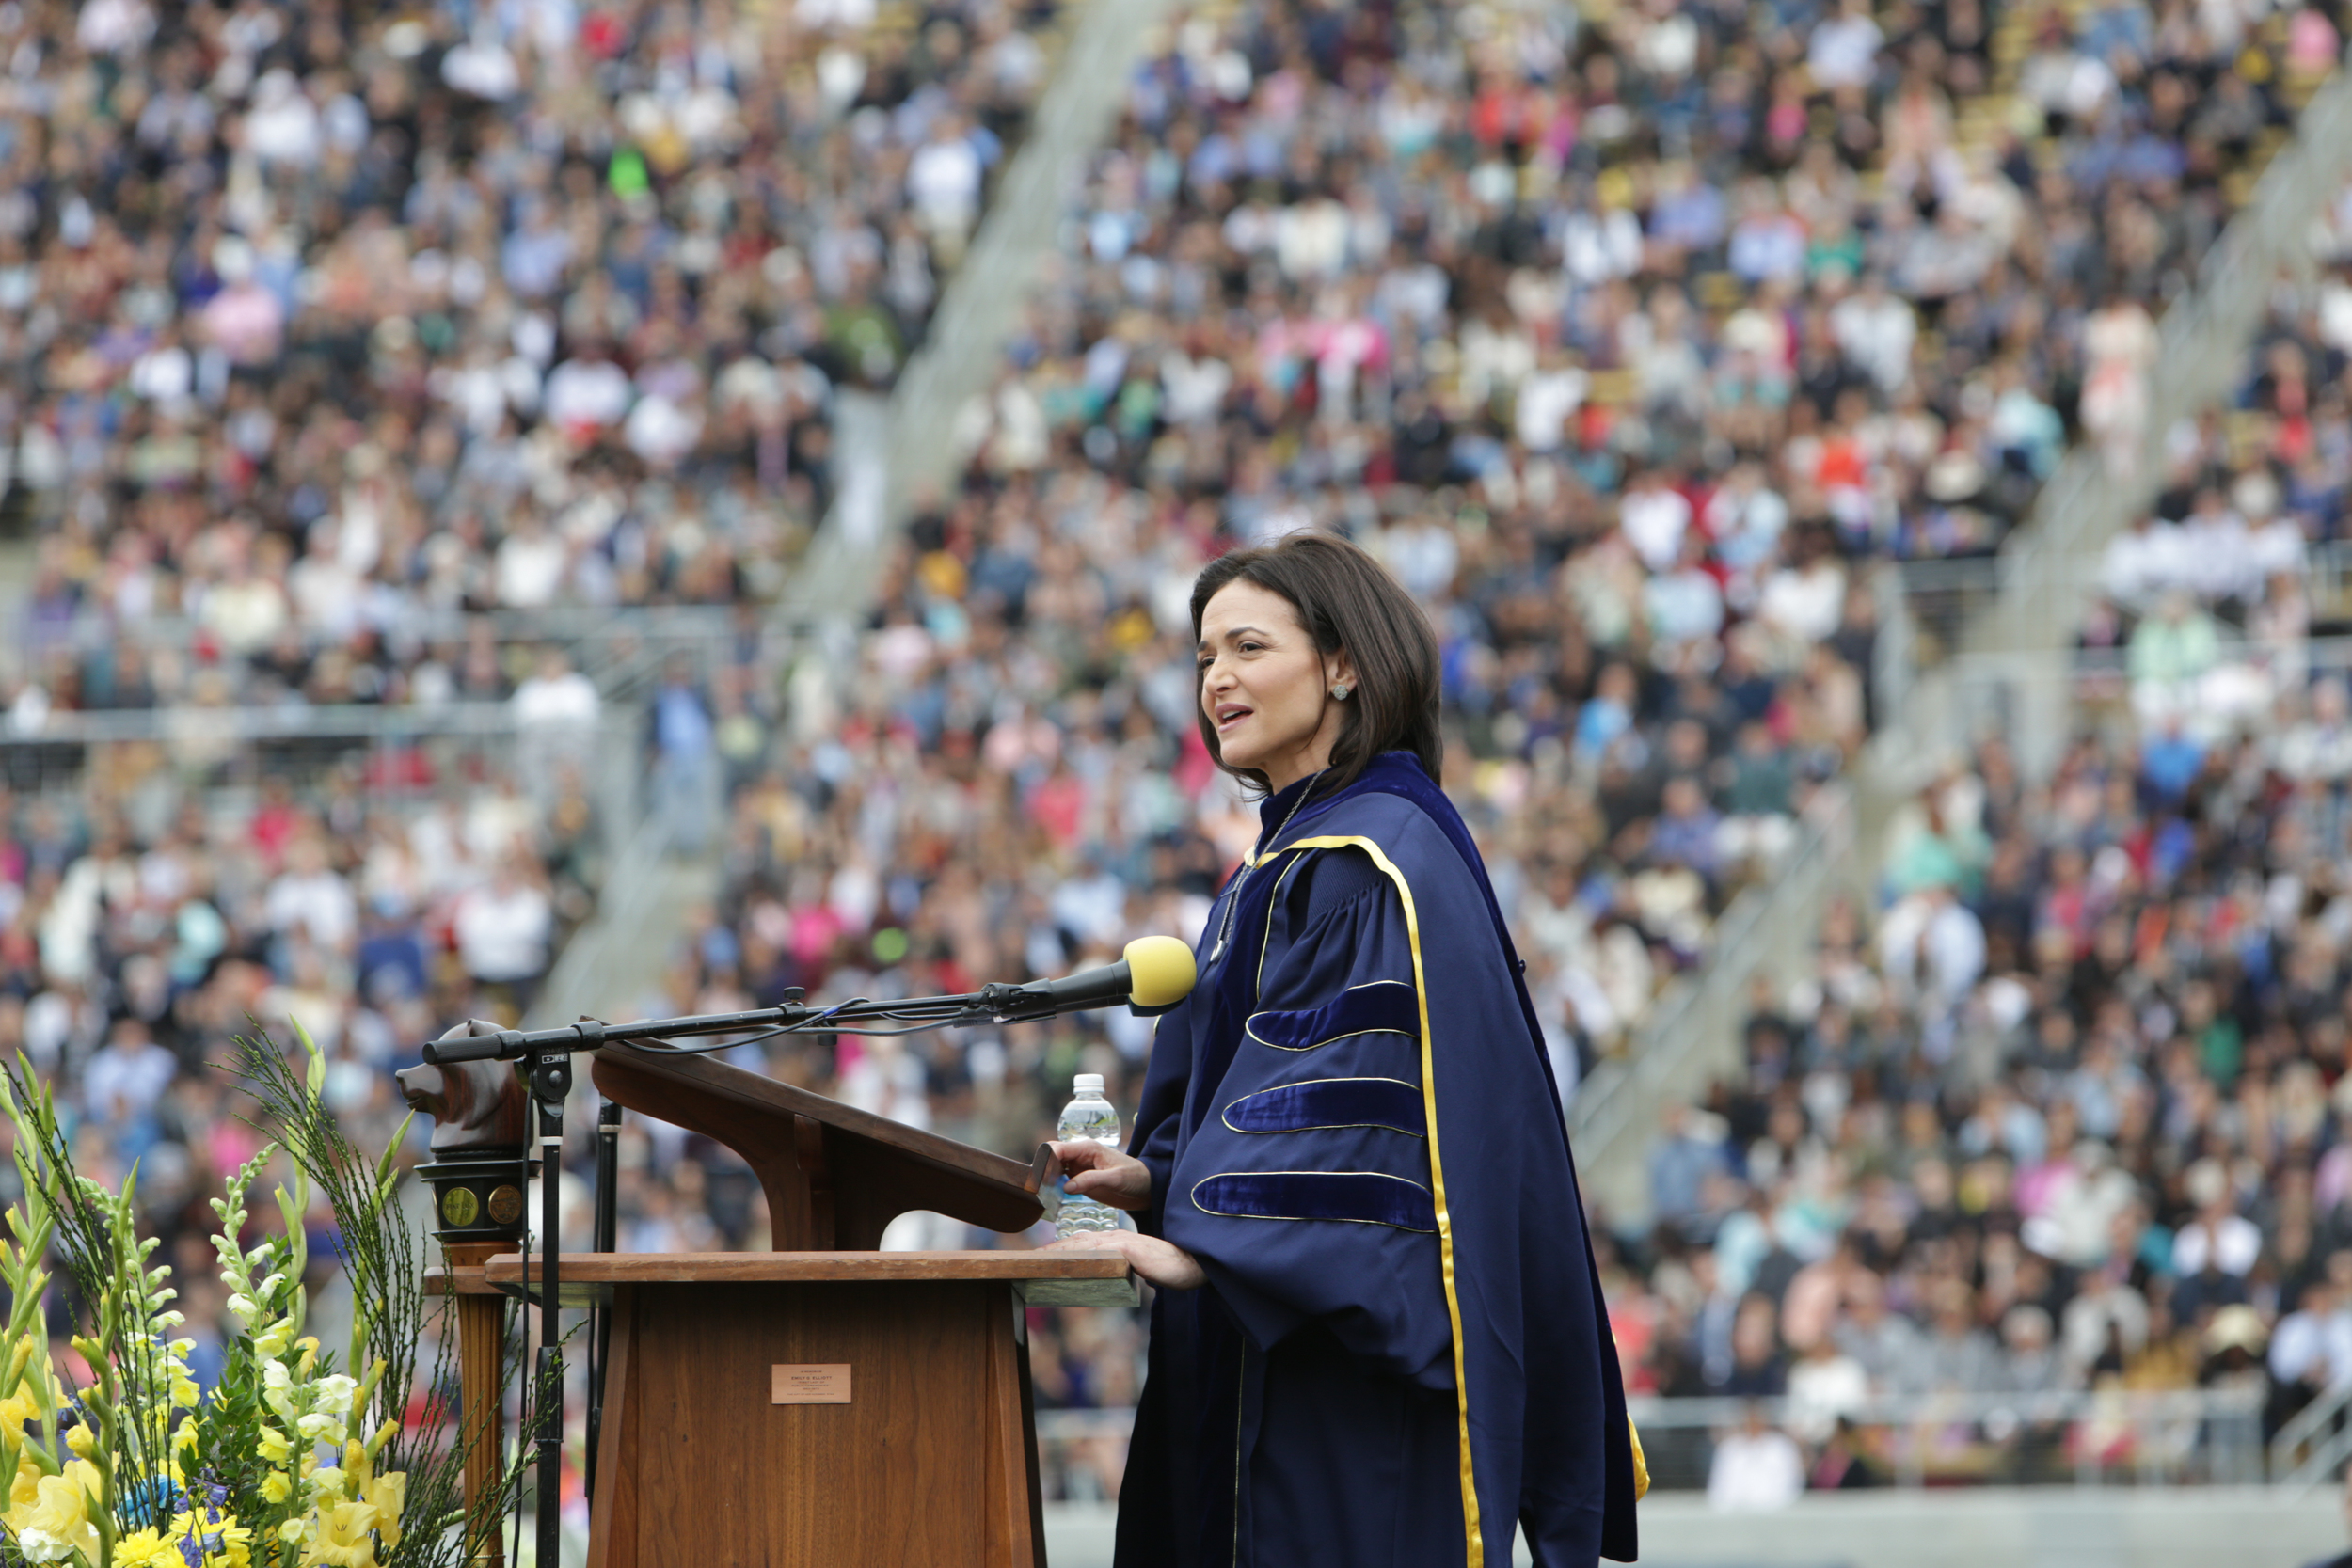 Photo coverage of Sheryl Sandberg's address to Berkeley graduates, 5/14/16, published in the Wall Street Journal, Boston Globe, Vogue, and numerous other media outlets.